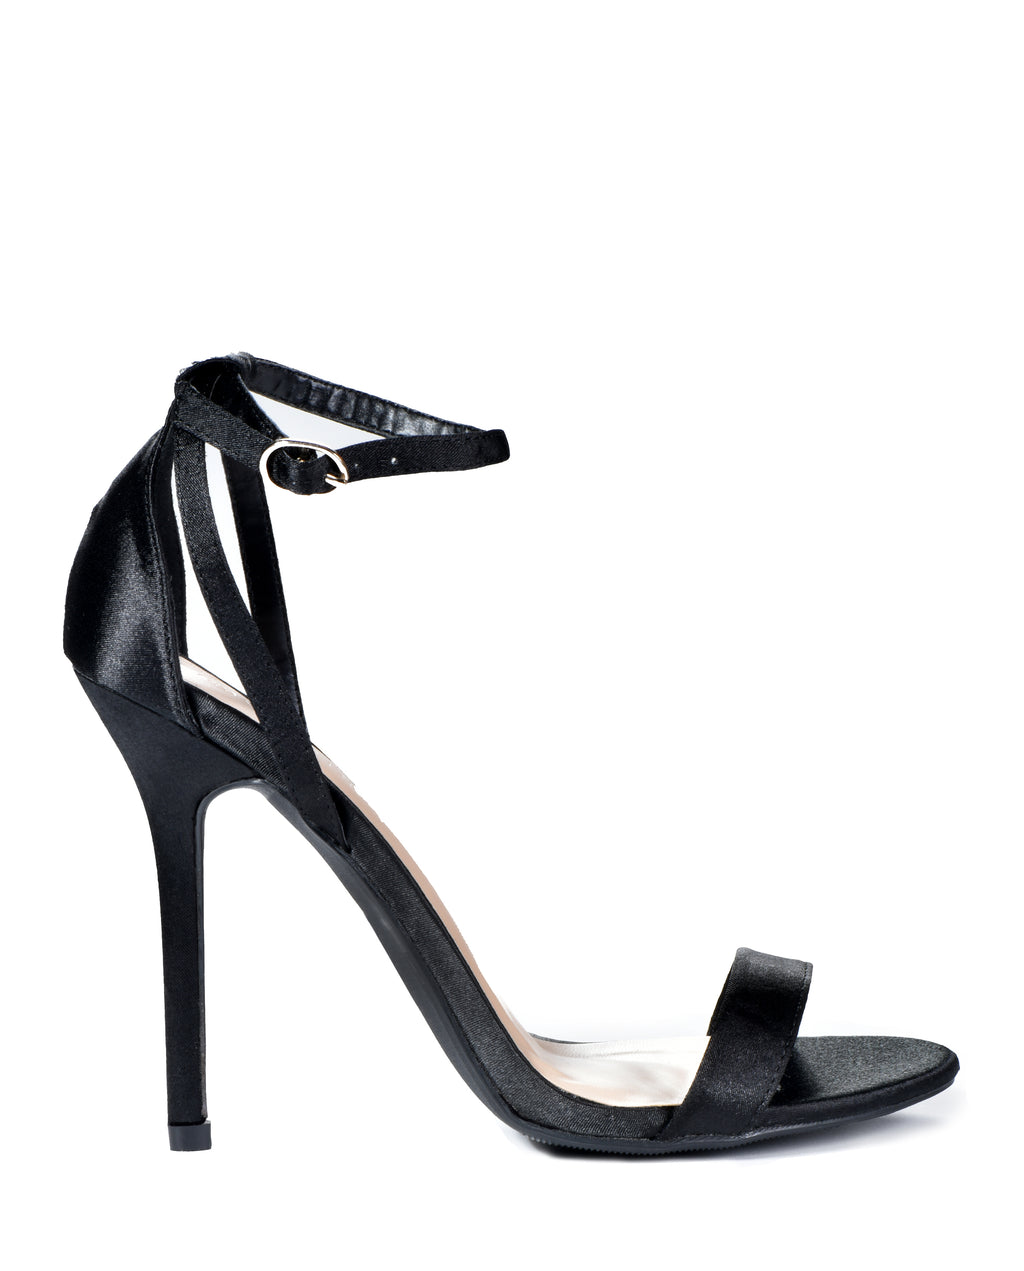 Satin Ankle Strap Satin Heels - Fashion You Up